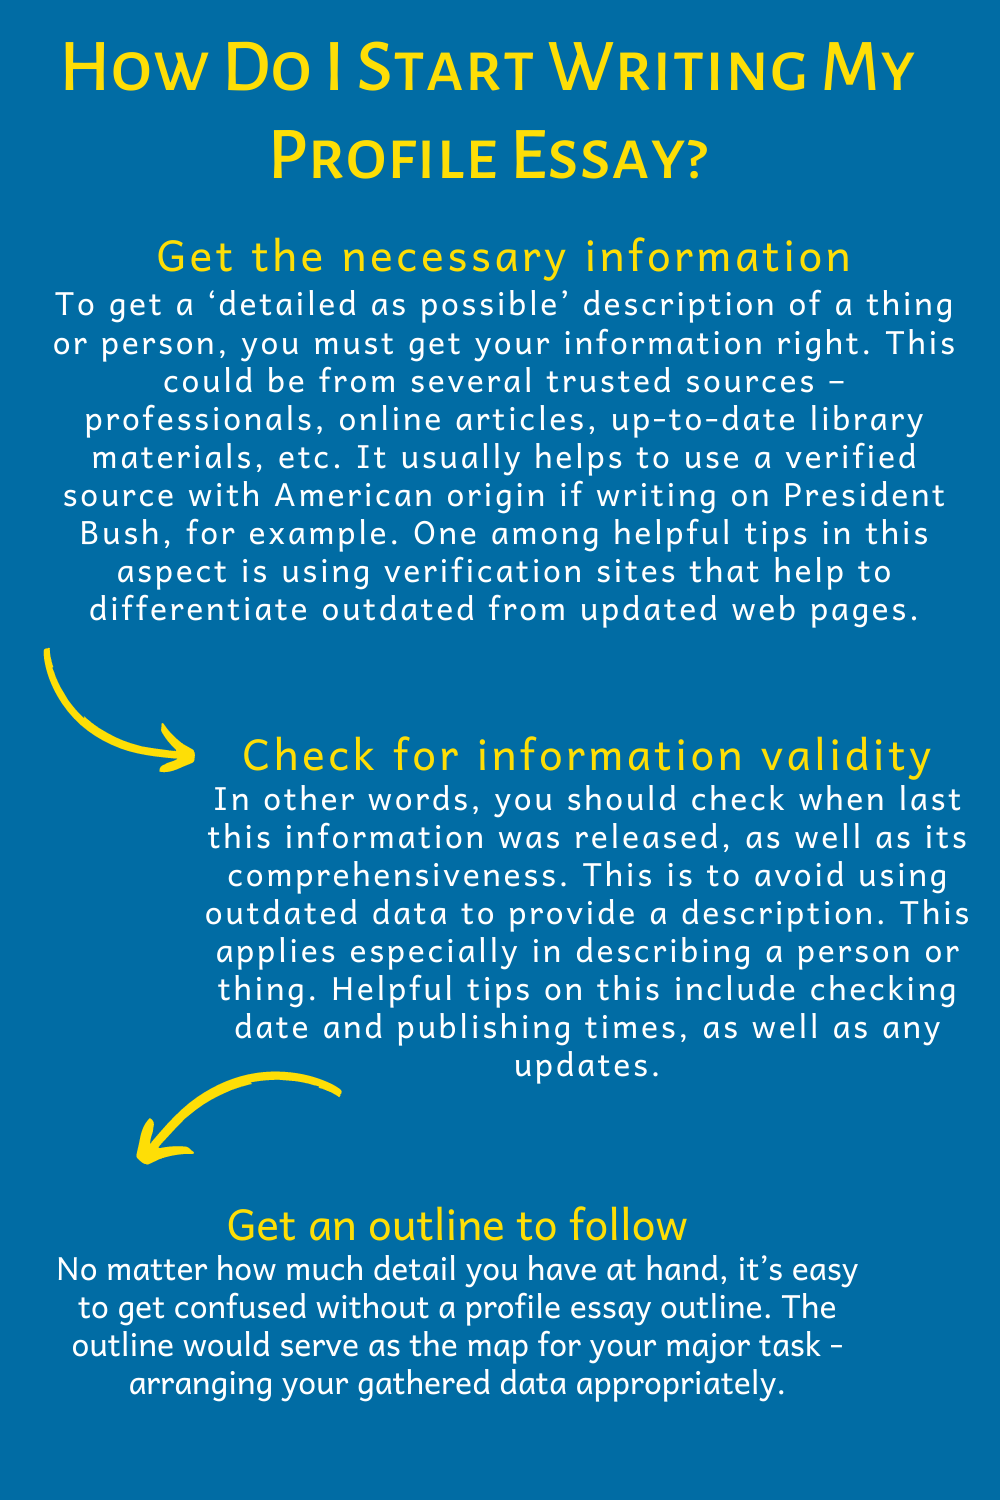 Best Advice On How To Write A Profile Essay  College application